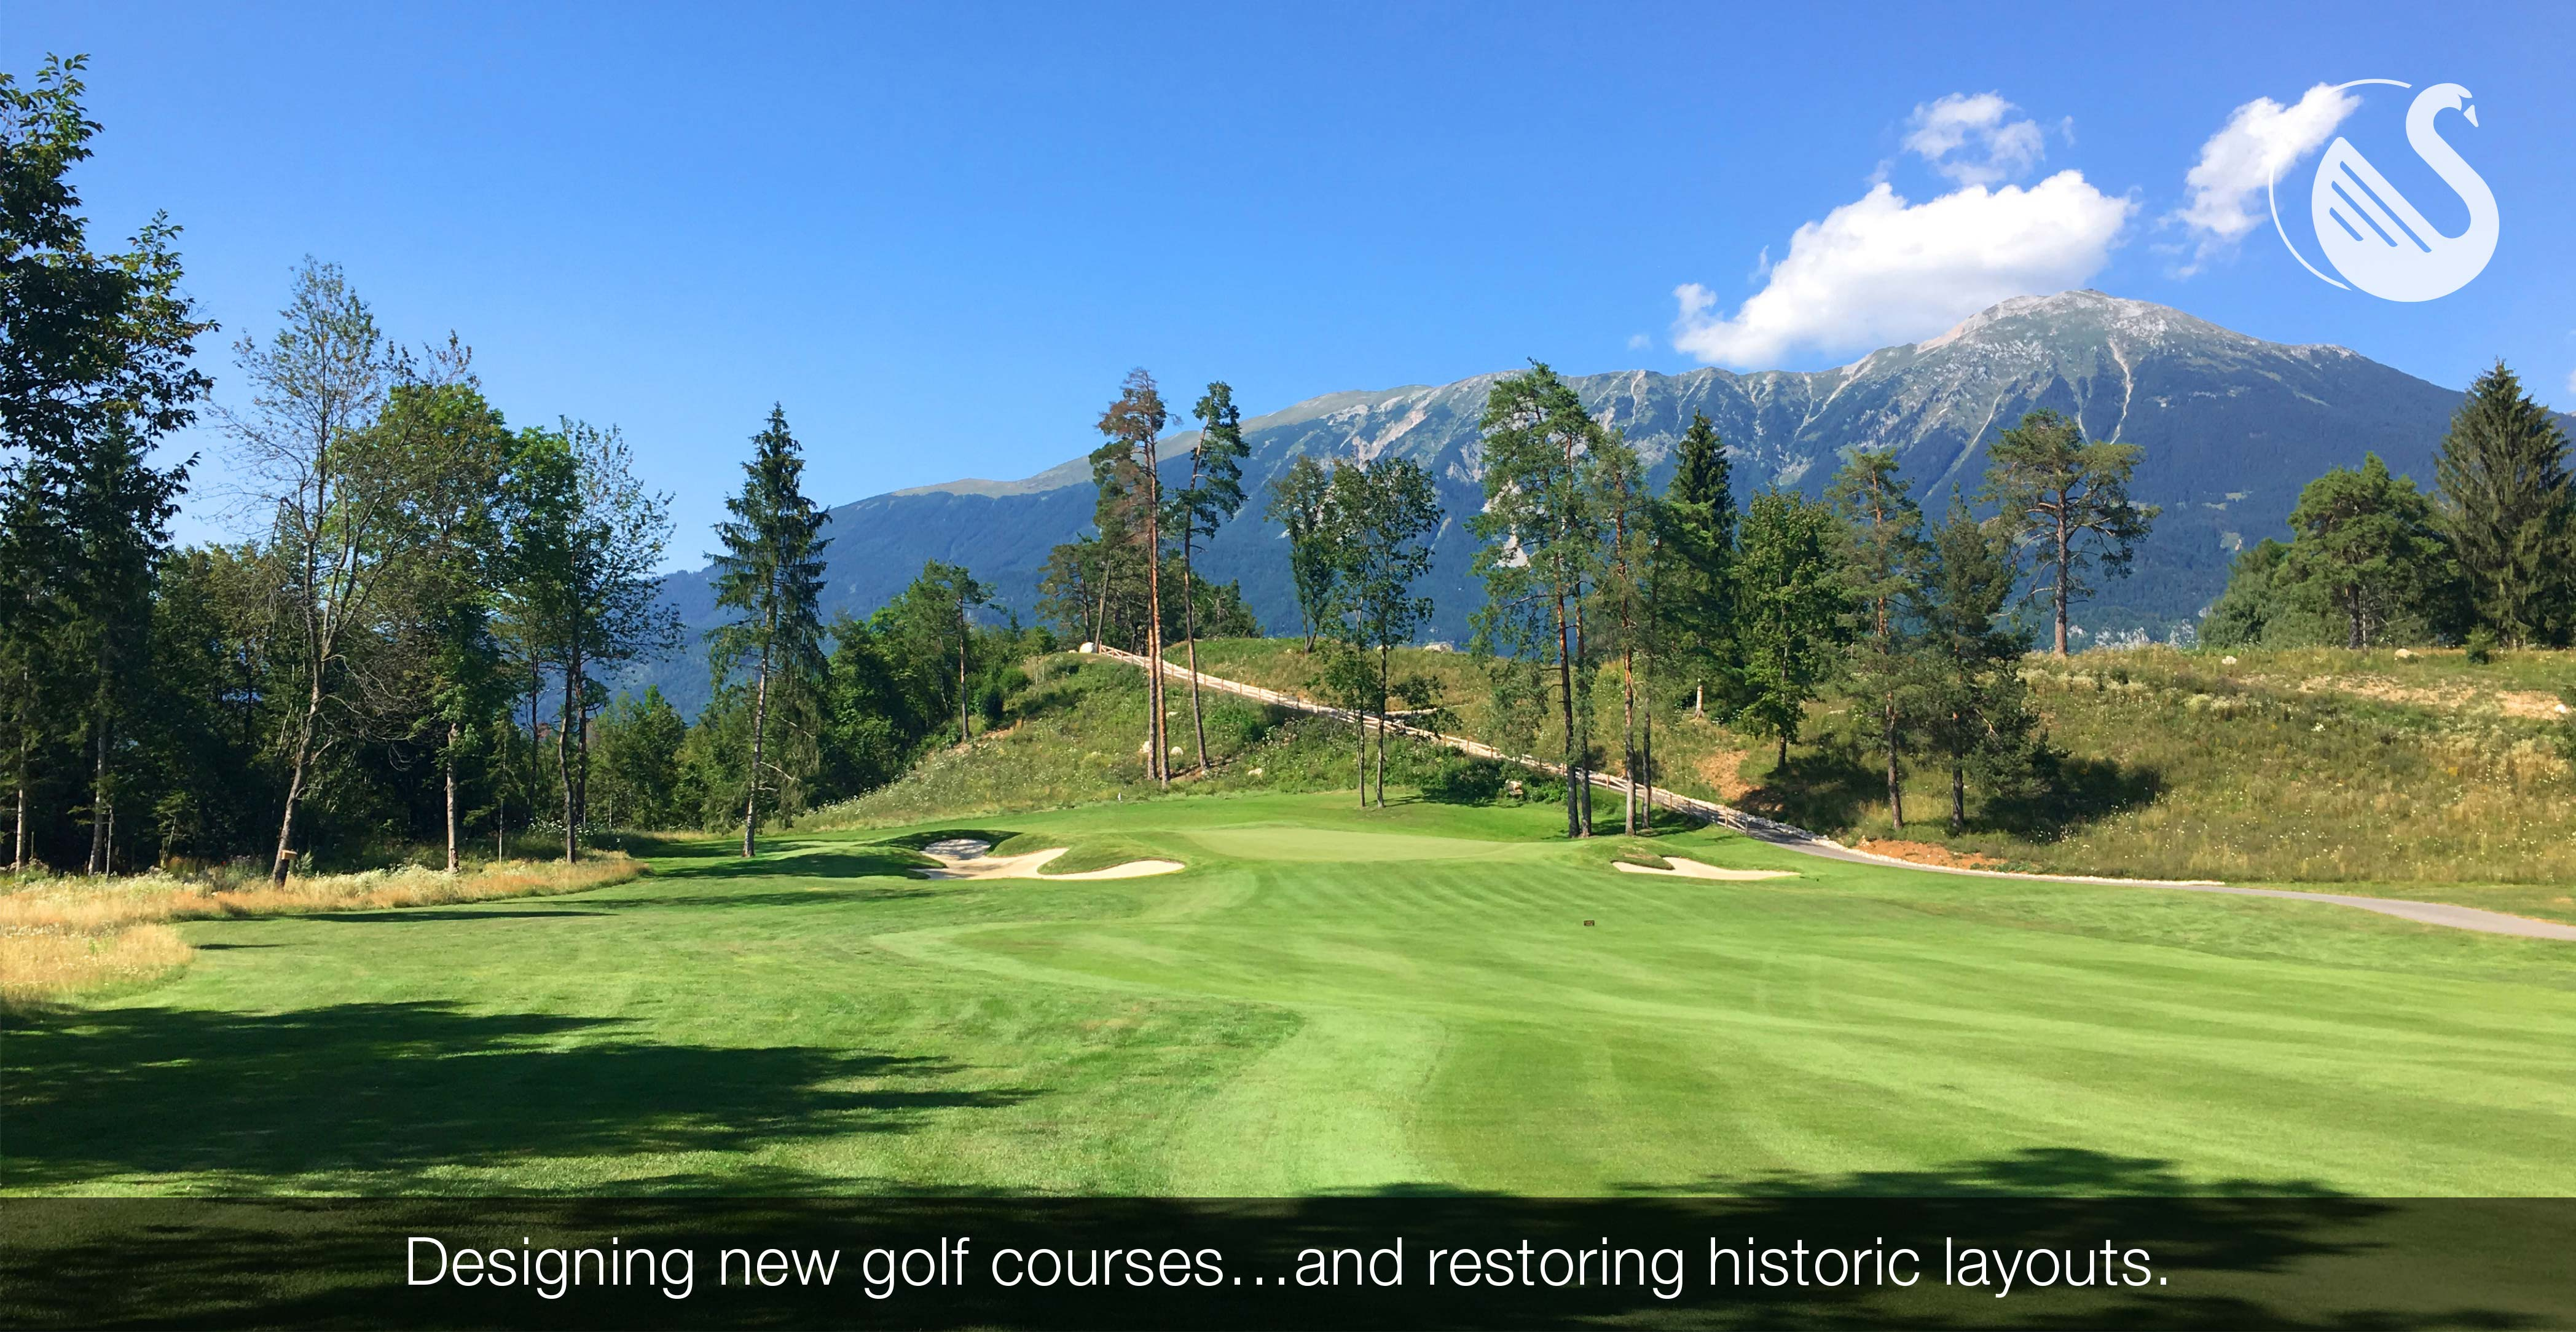 Designing new golf courses…and restoring historic layouts.